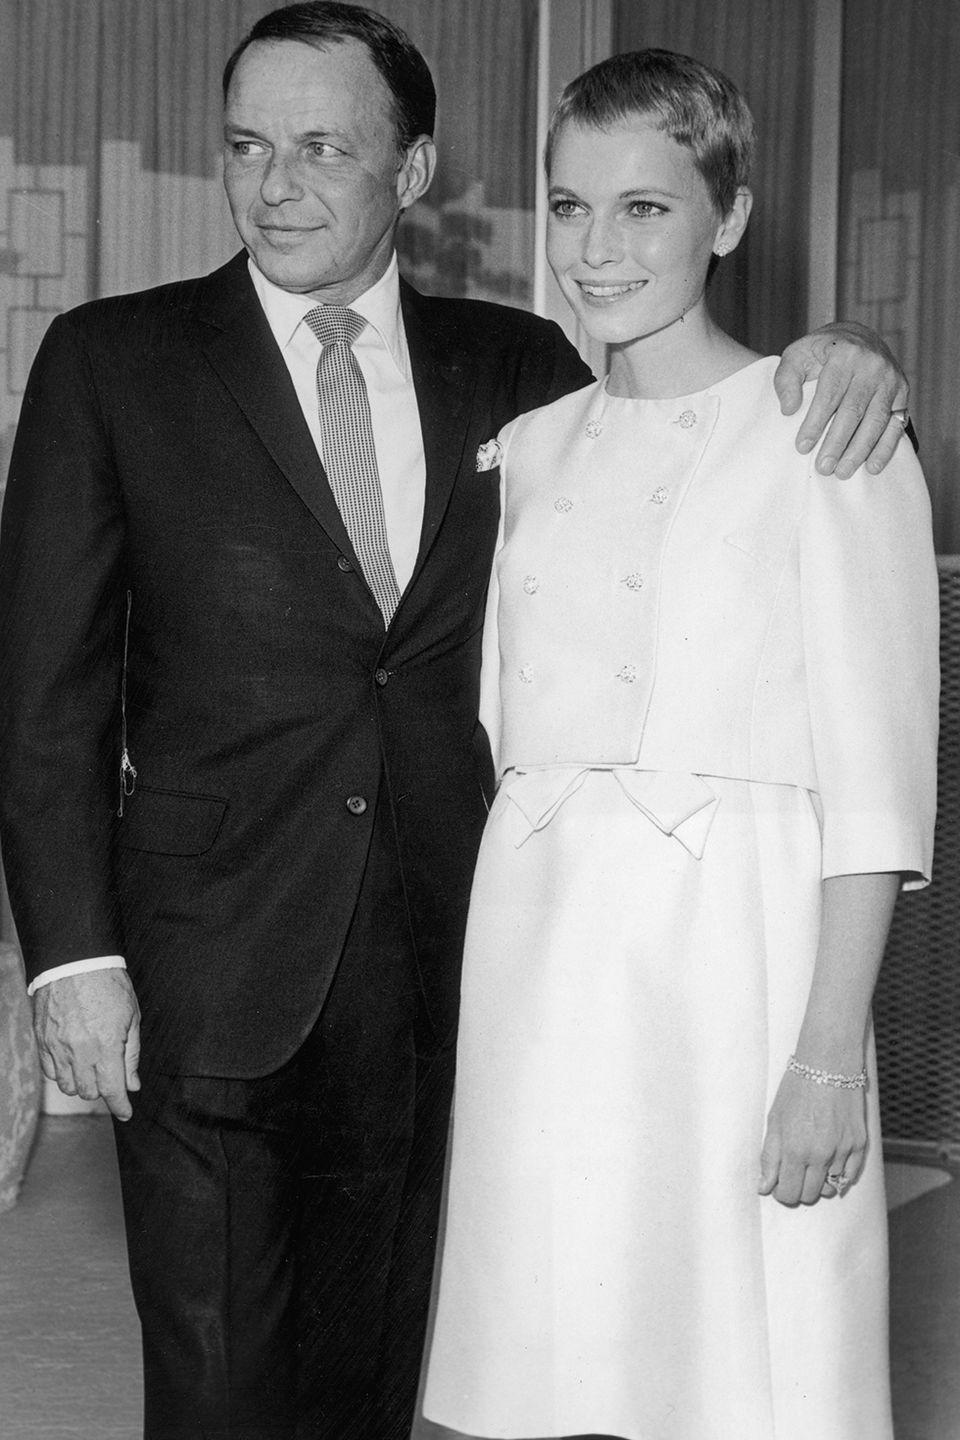 <p>Daring in its simplicity, Mia Farrow's dress was paired with a matching cropped jacket with a bow around the waist when she became Frank Sinatra's third wife at their private wedding in Las Vegas, Nevada. Just 21 at the time, her newly cropped hair might have stolen the spotlight.</p>